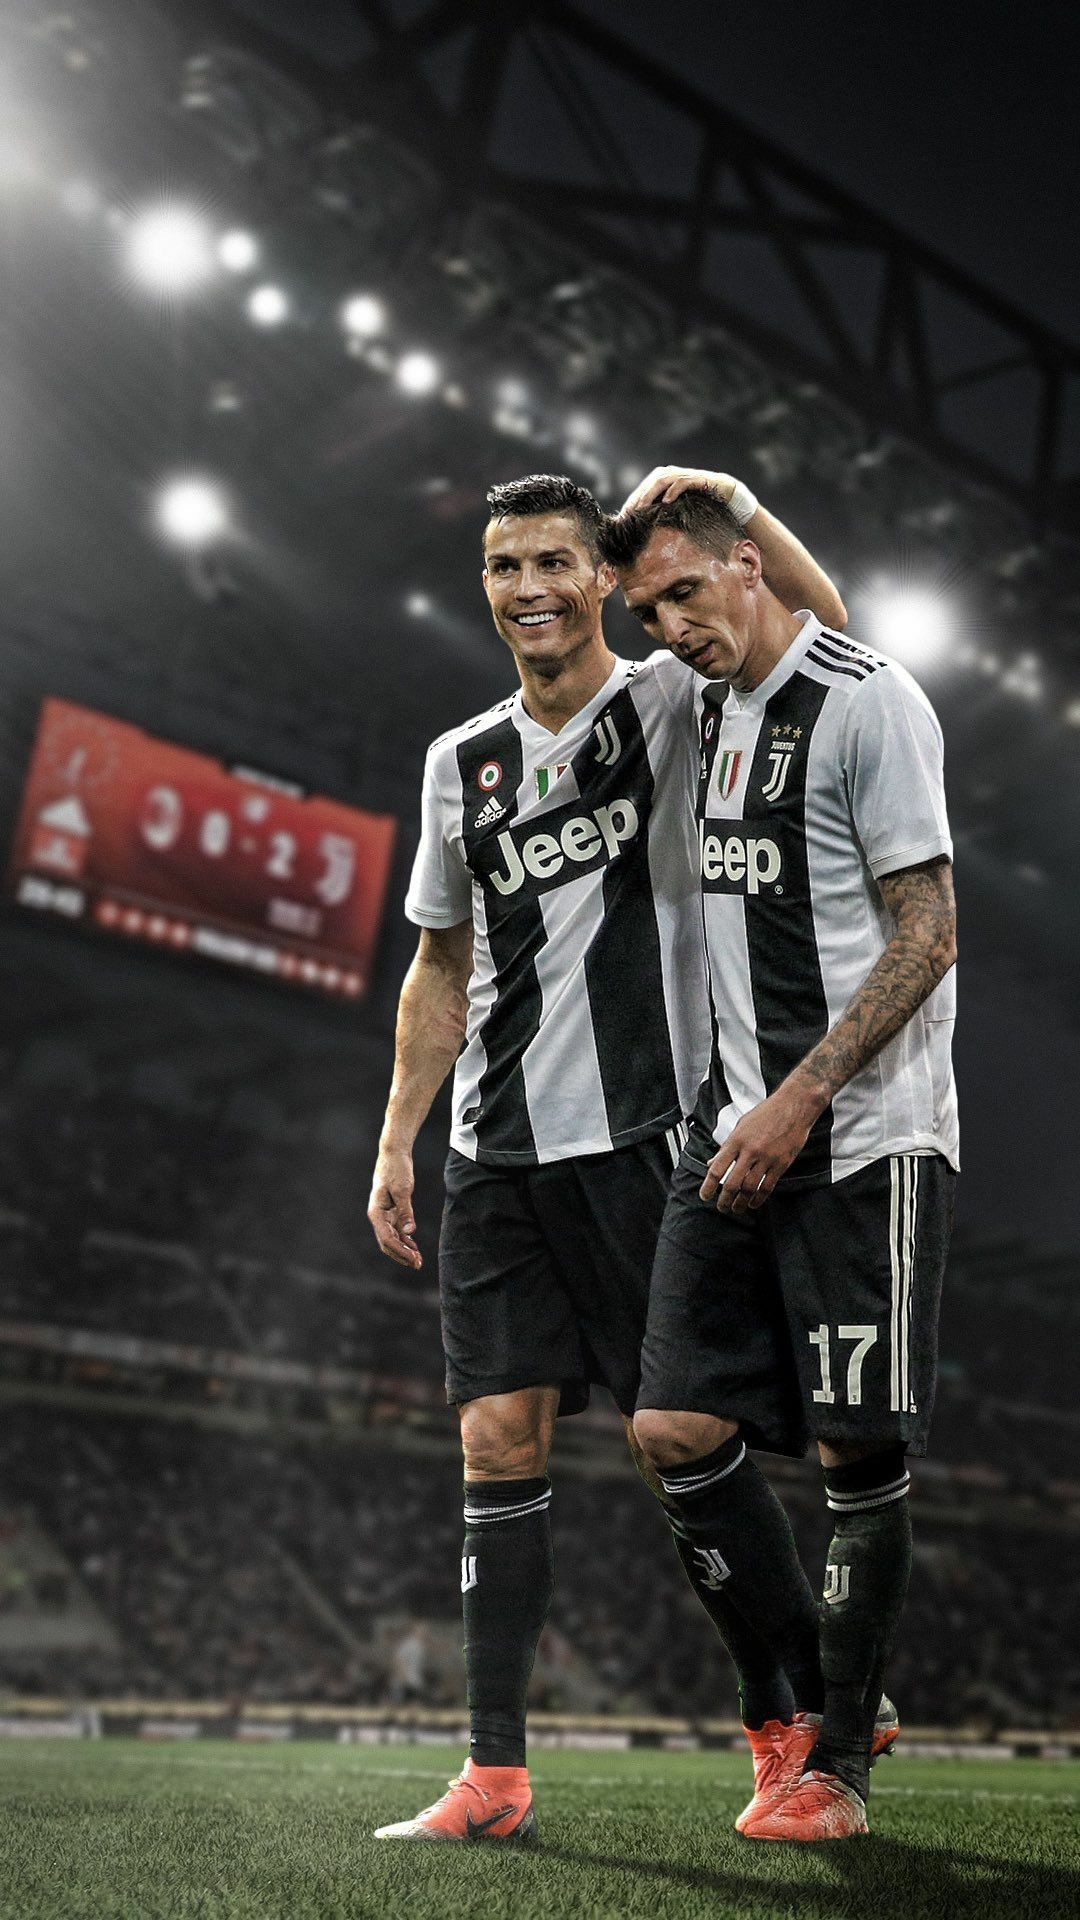 Juventus wallpaper | Football | Footballeur, Football ...